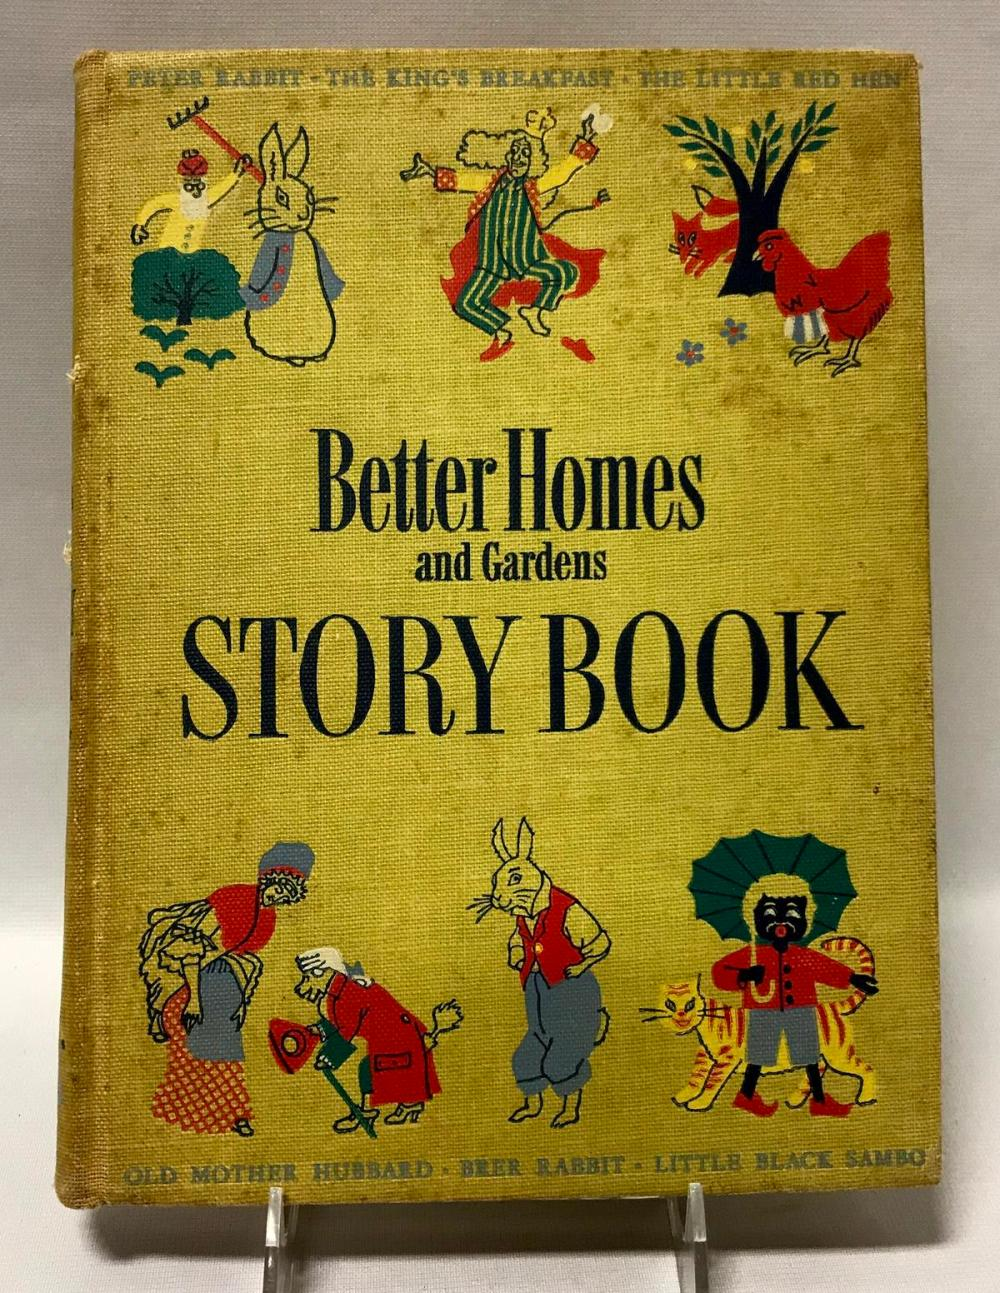 1950 Better Homes & Gardens Storybook (Little Black Sambo, Etc..)